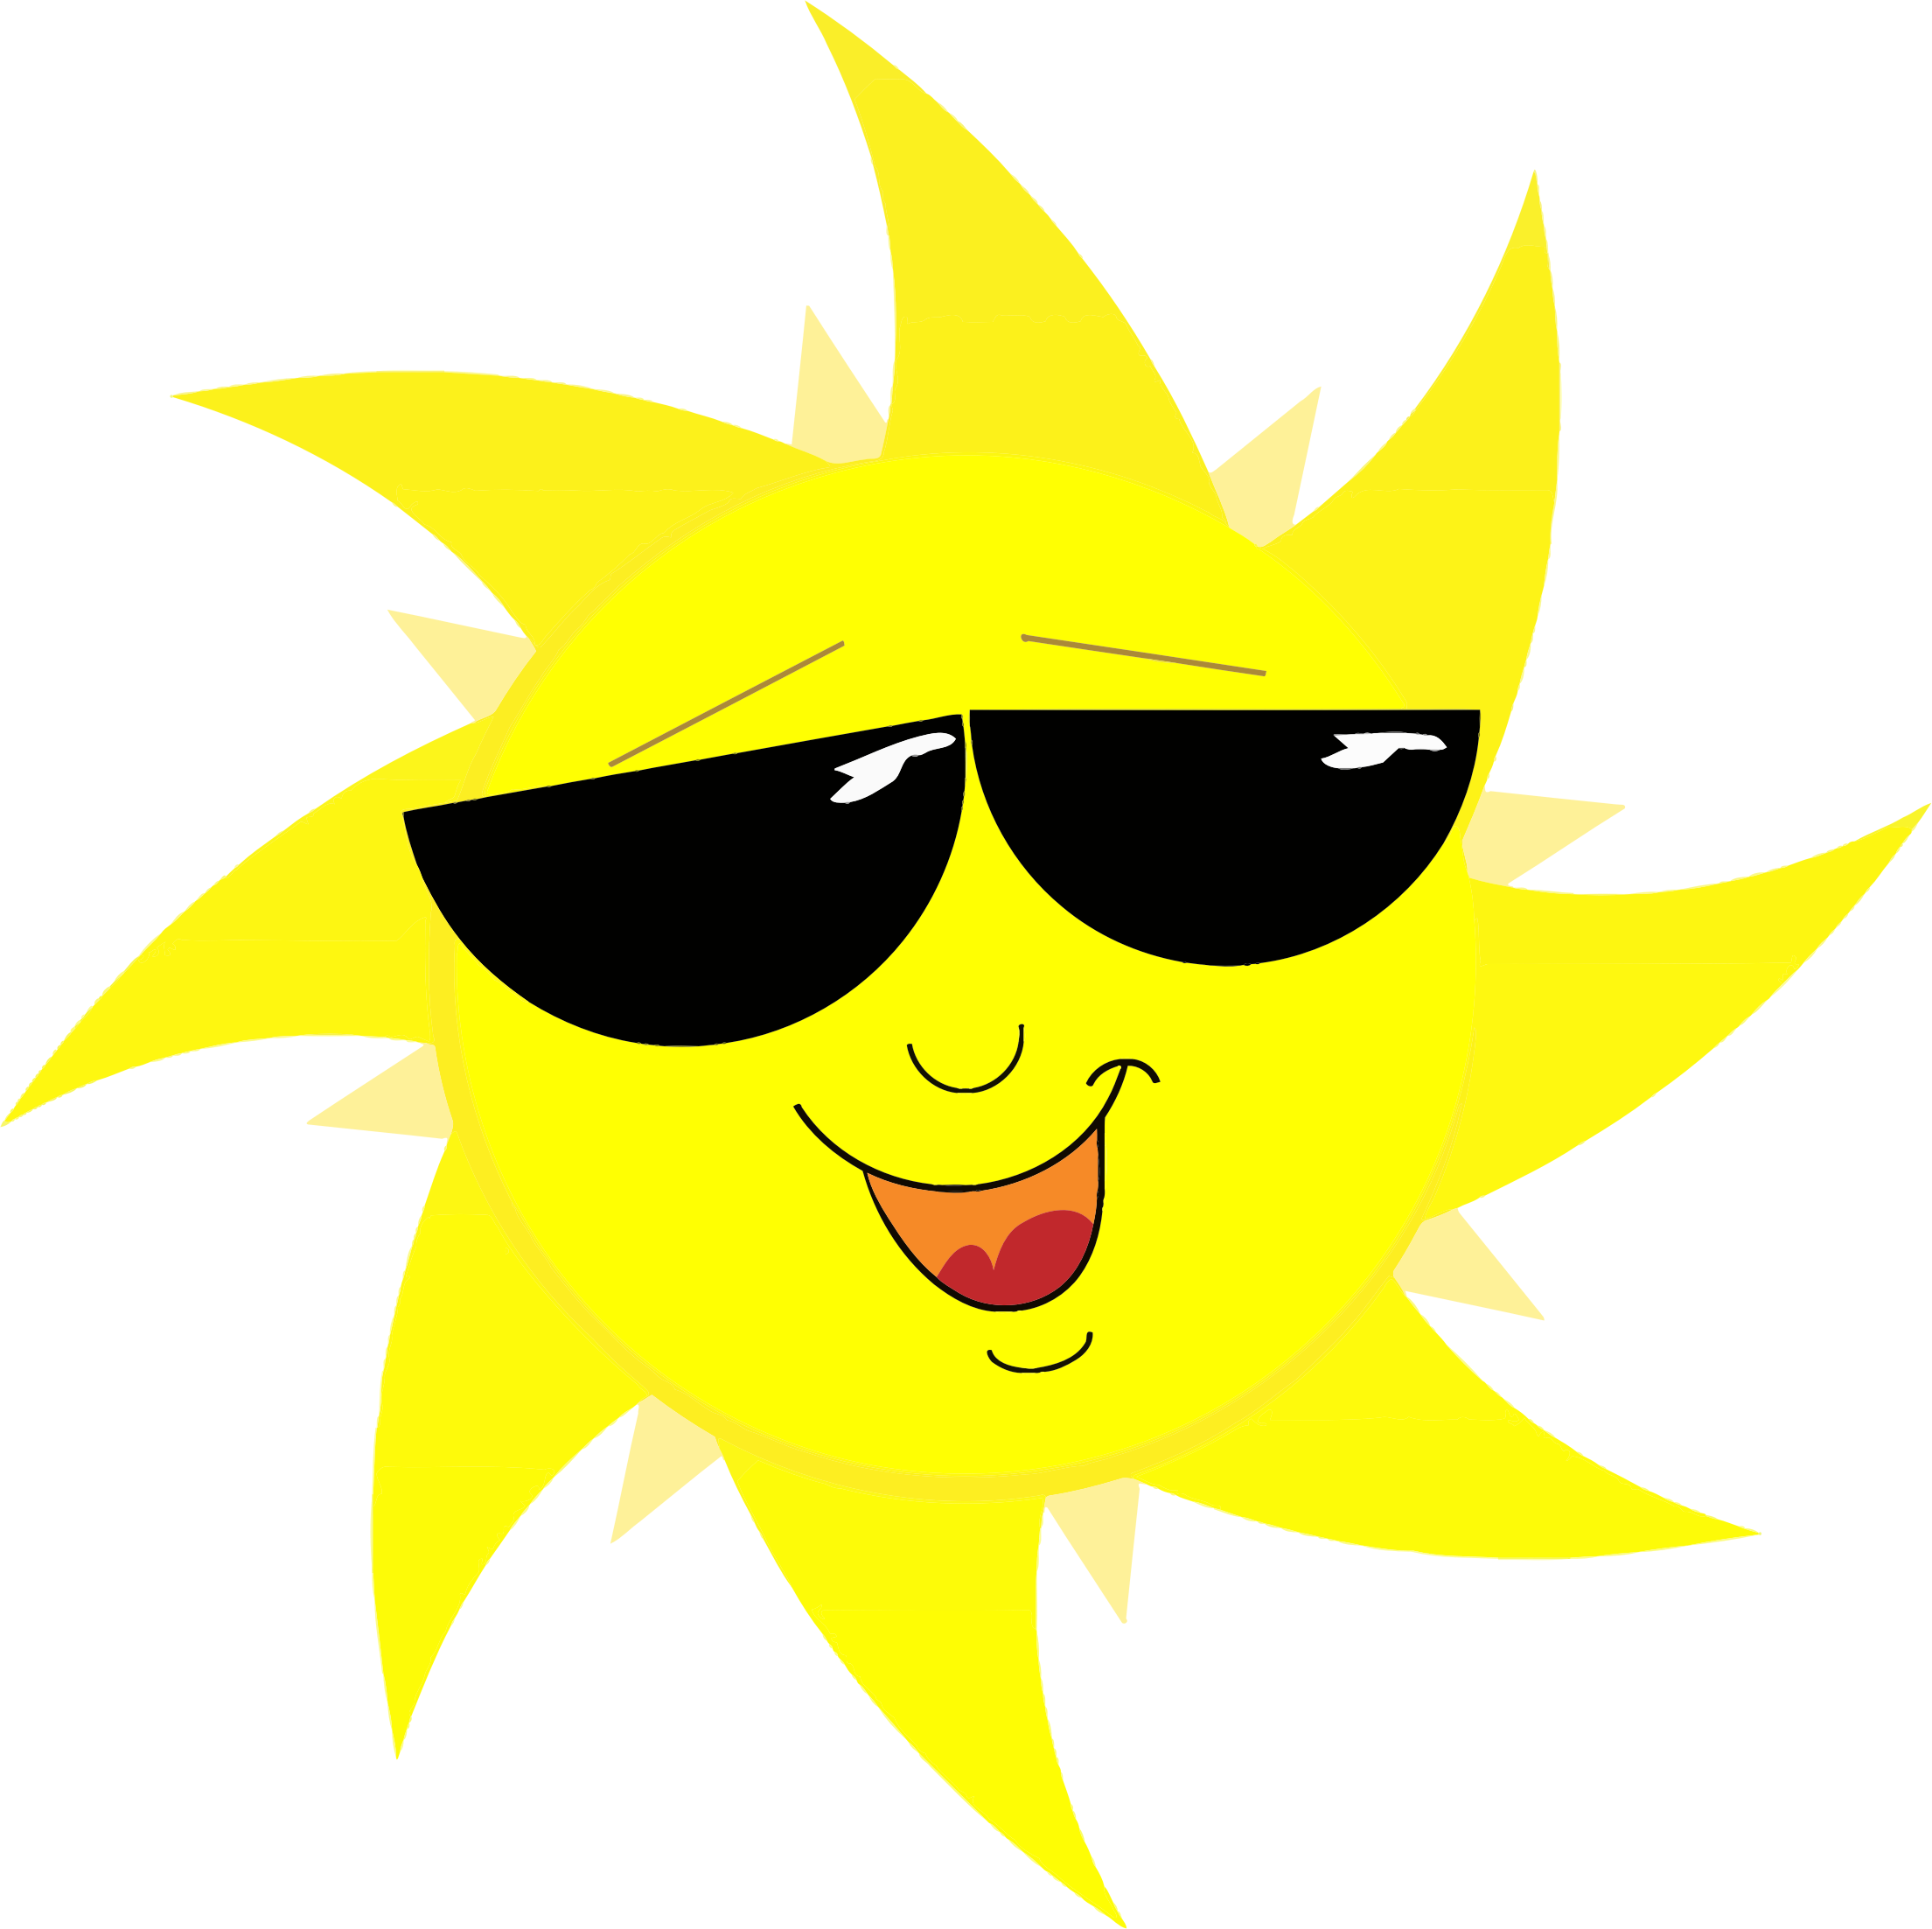 Smiling-Sun-Face-In-Sunglasses